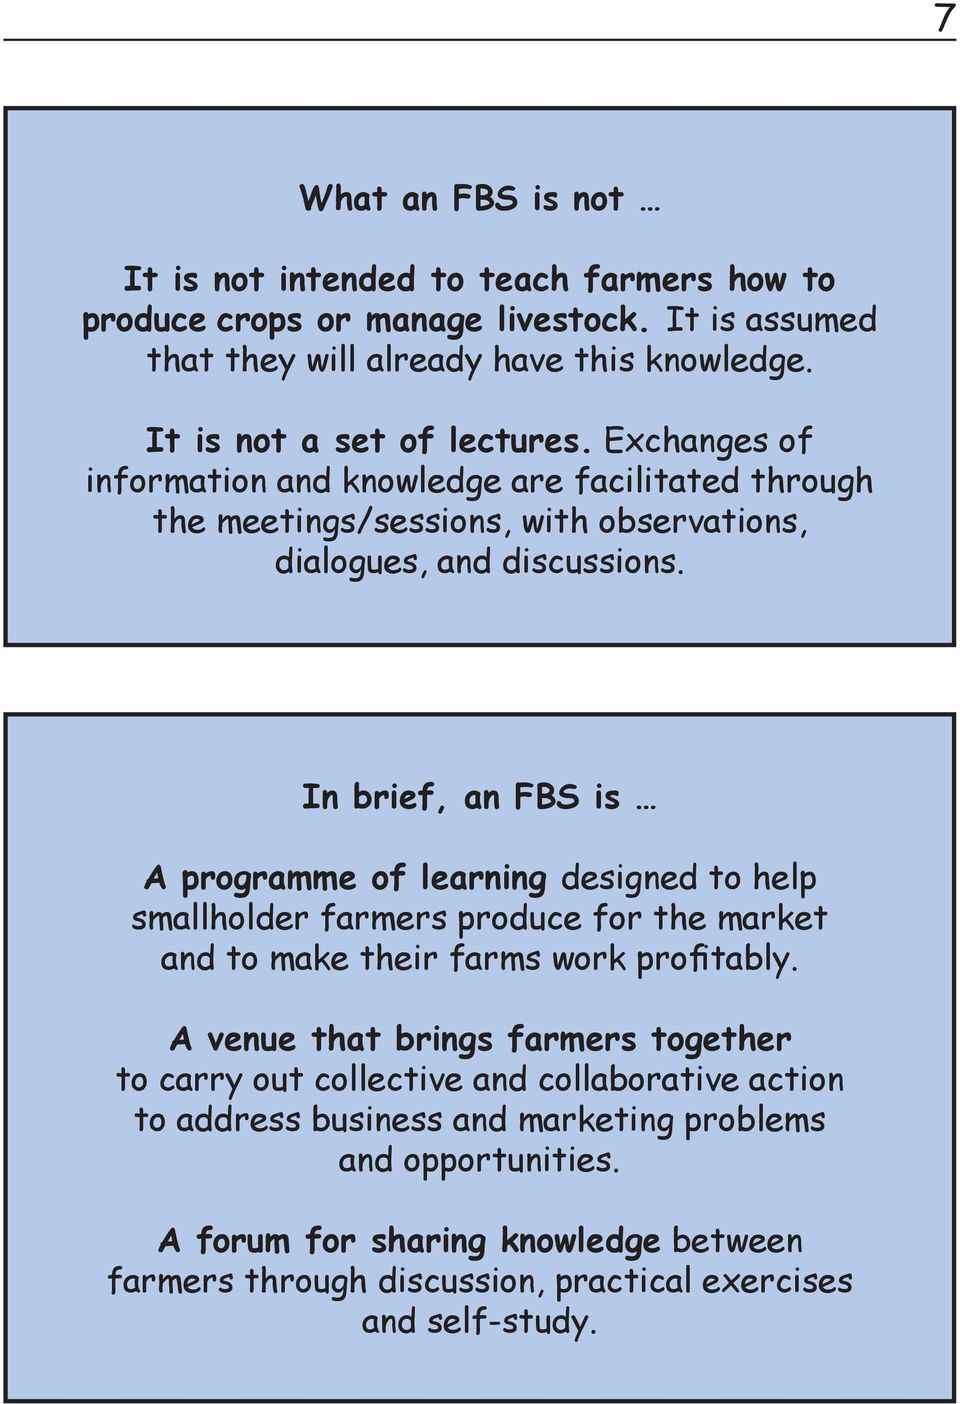 In brief, an FBS is A programme of learning designed to help smallholder farmers produce for the market and to make their farms work profitably.